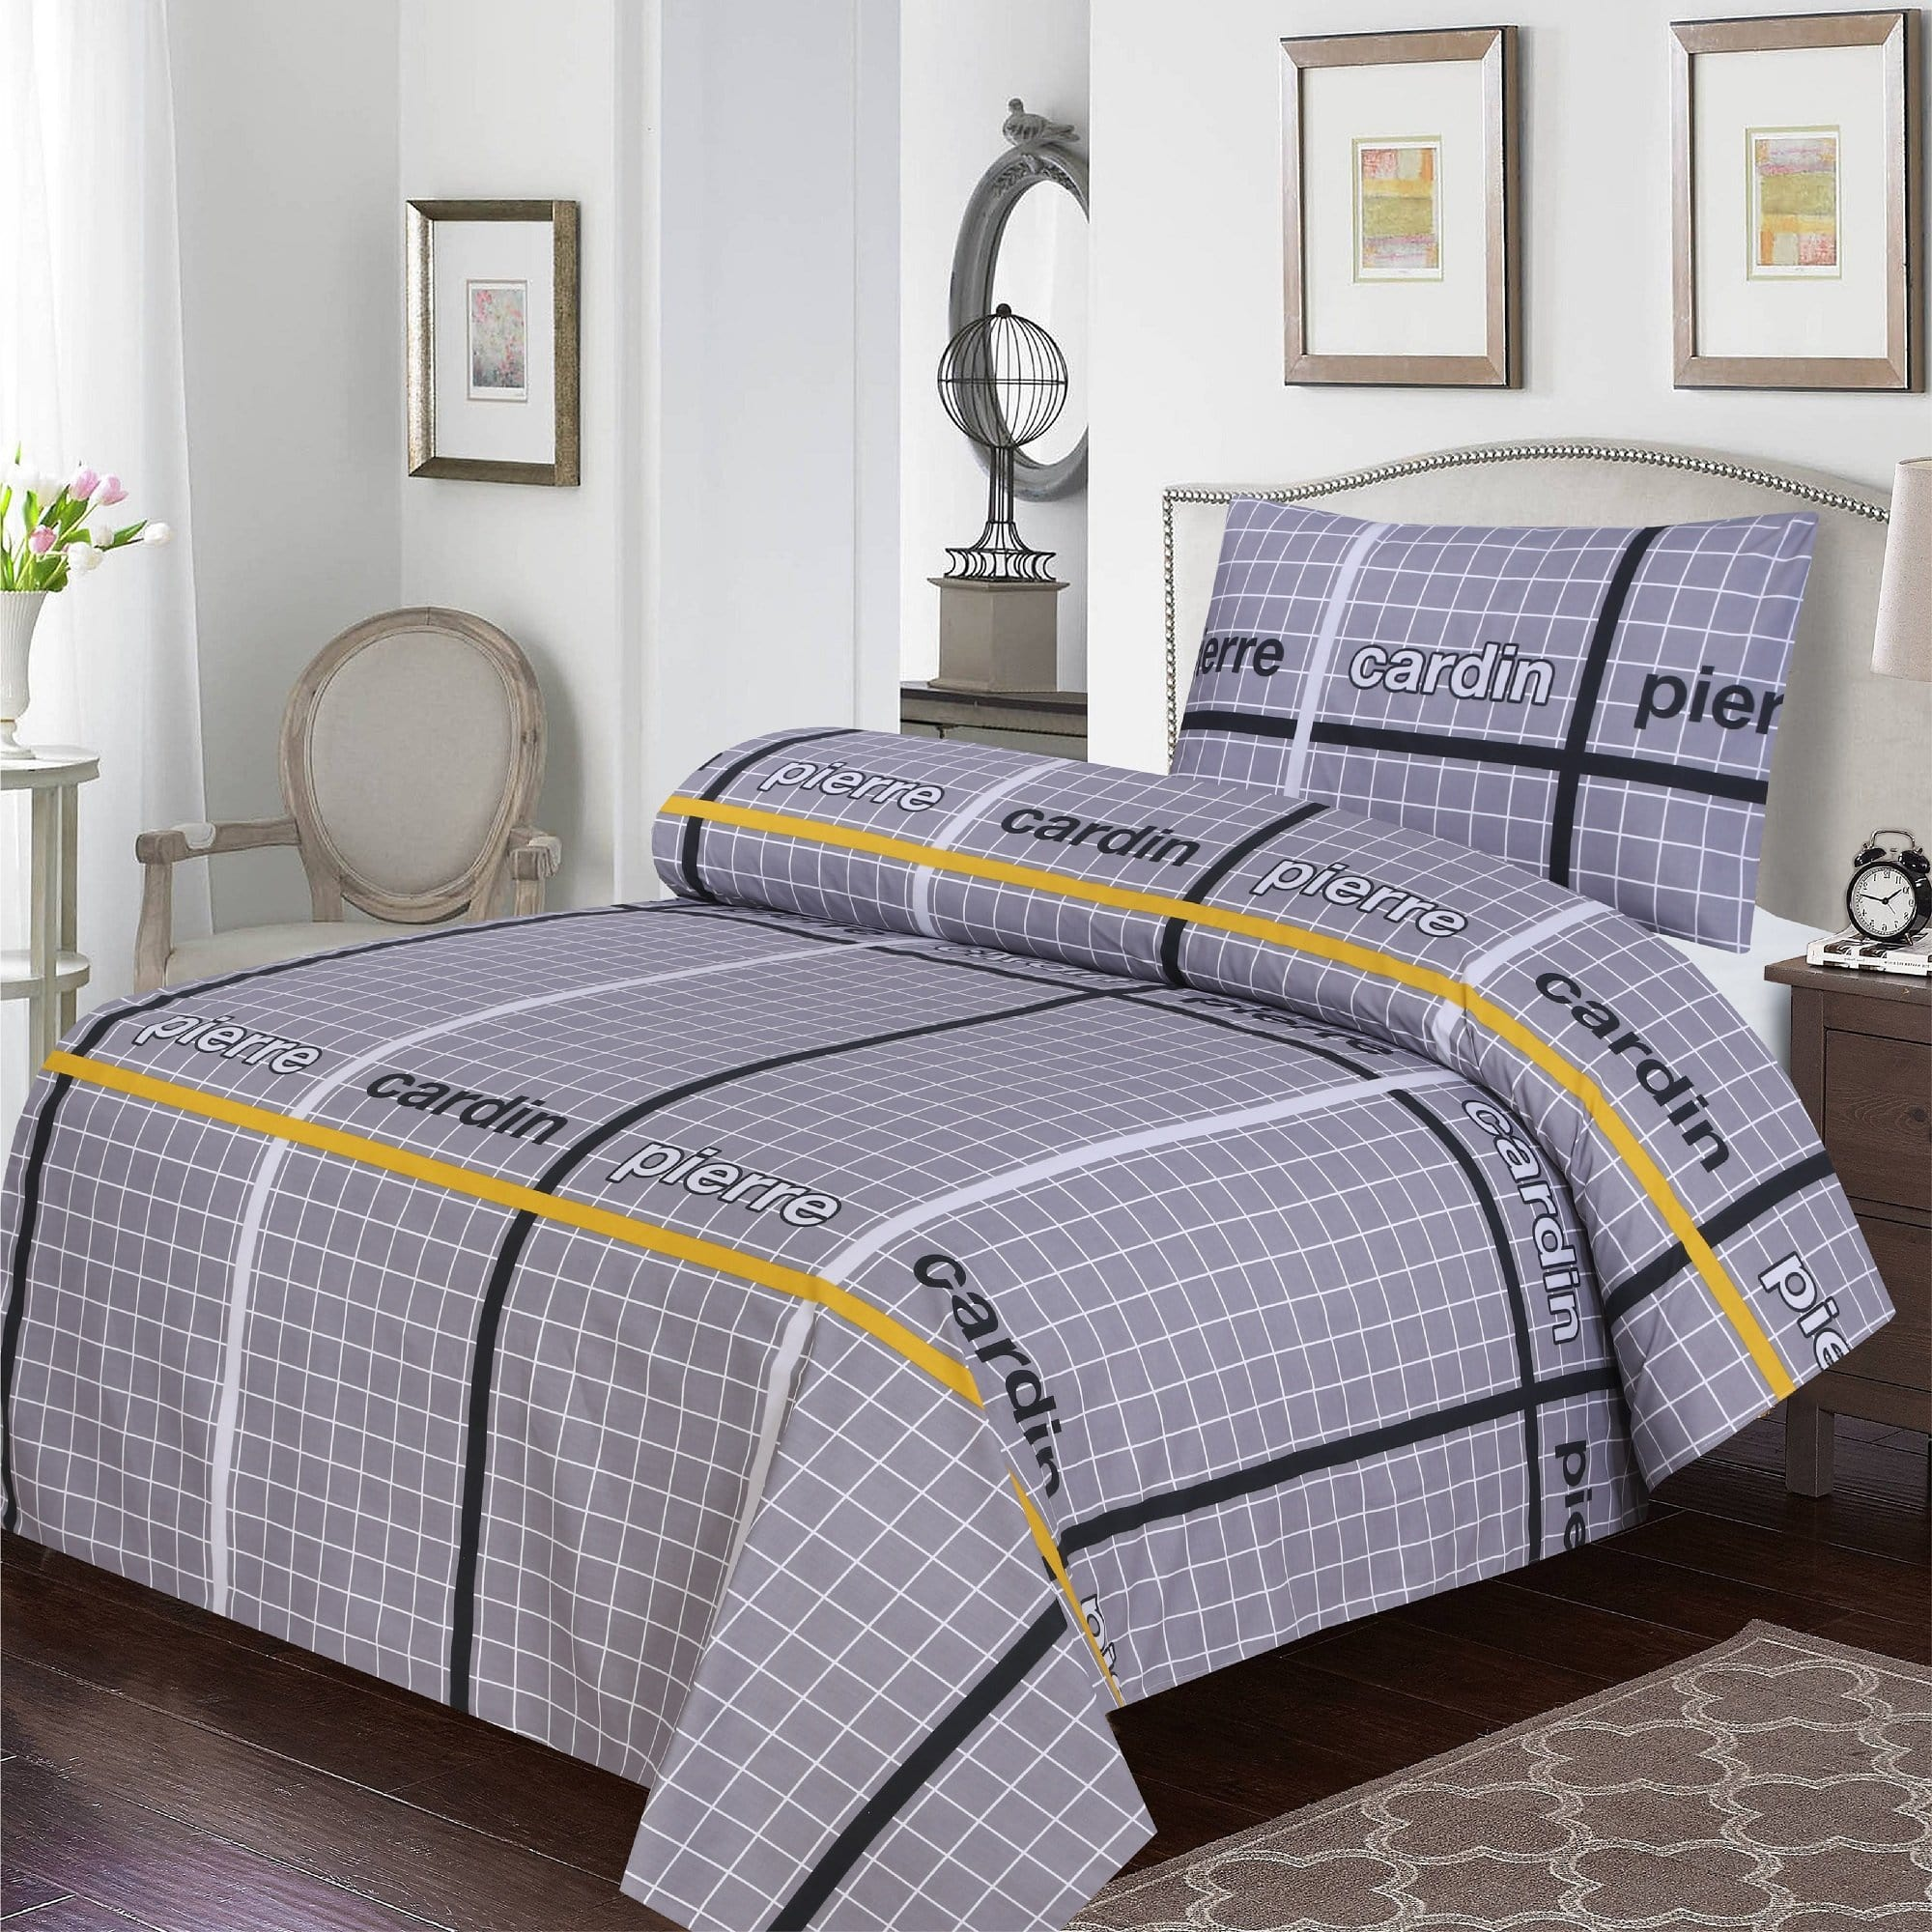 Grace D391-Cotton PC Single Size Bedsheet with 1 Pillow Cover.